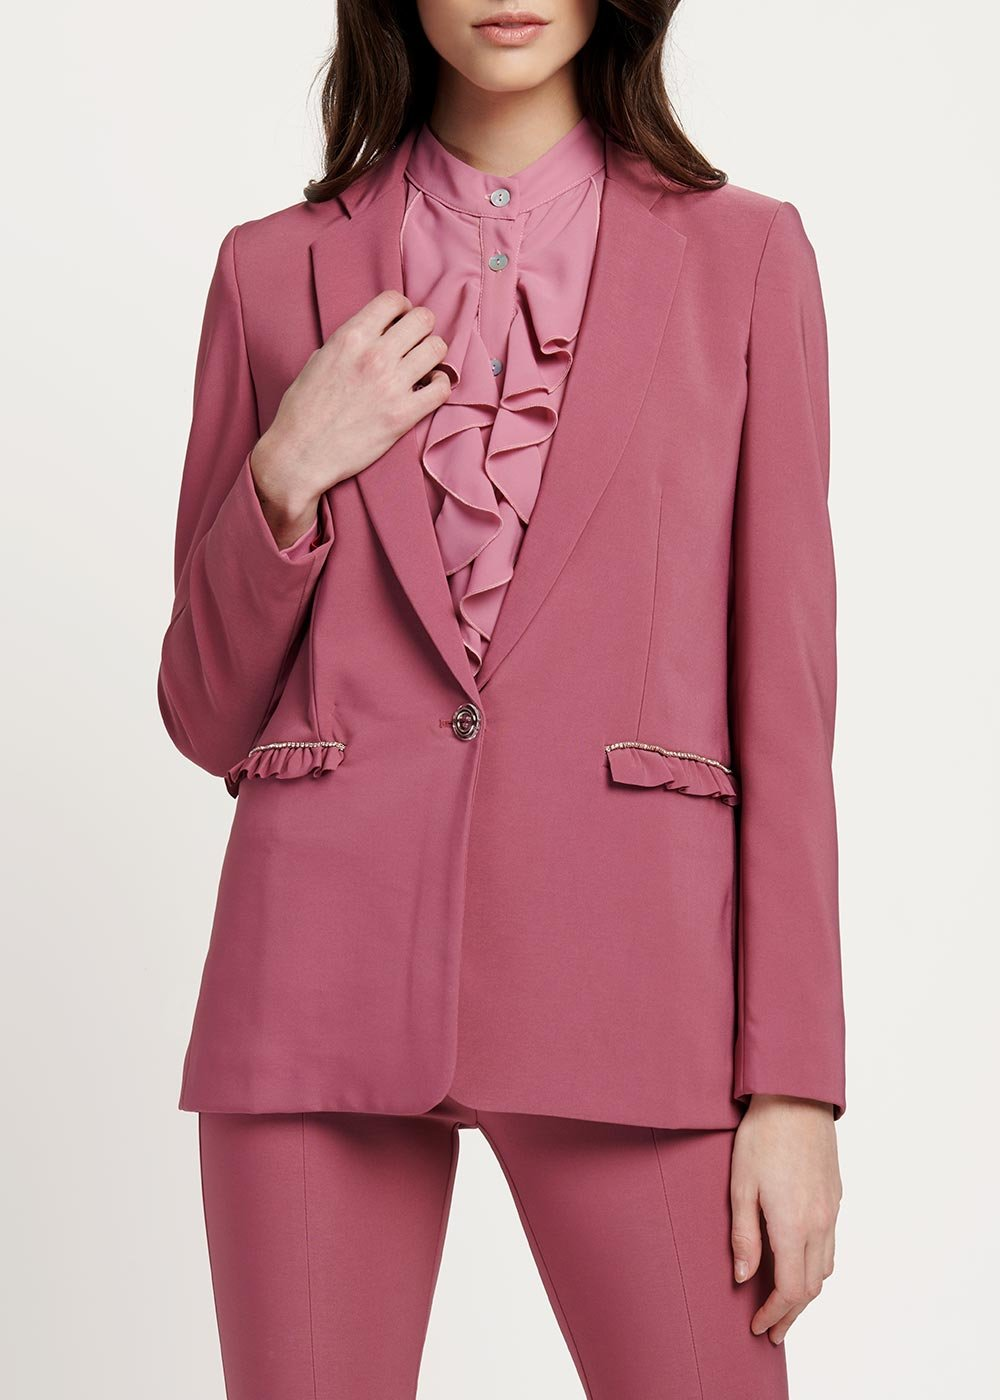 Germana jacket with revers and frills - Candy - Woman